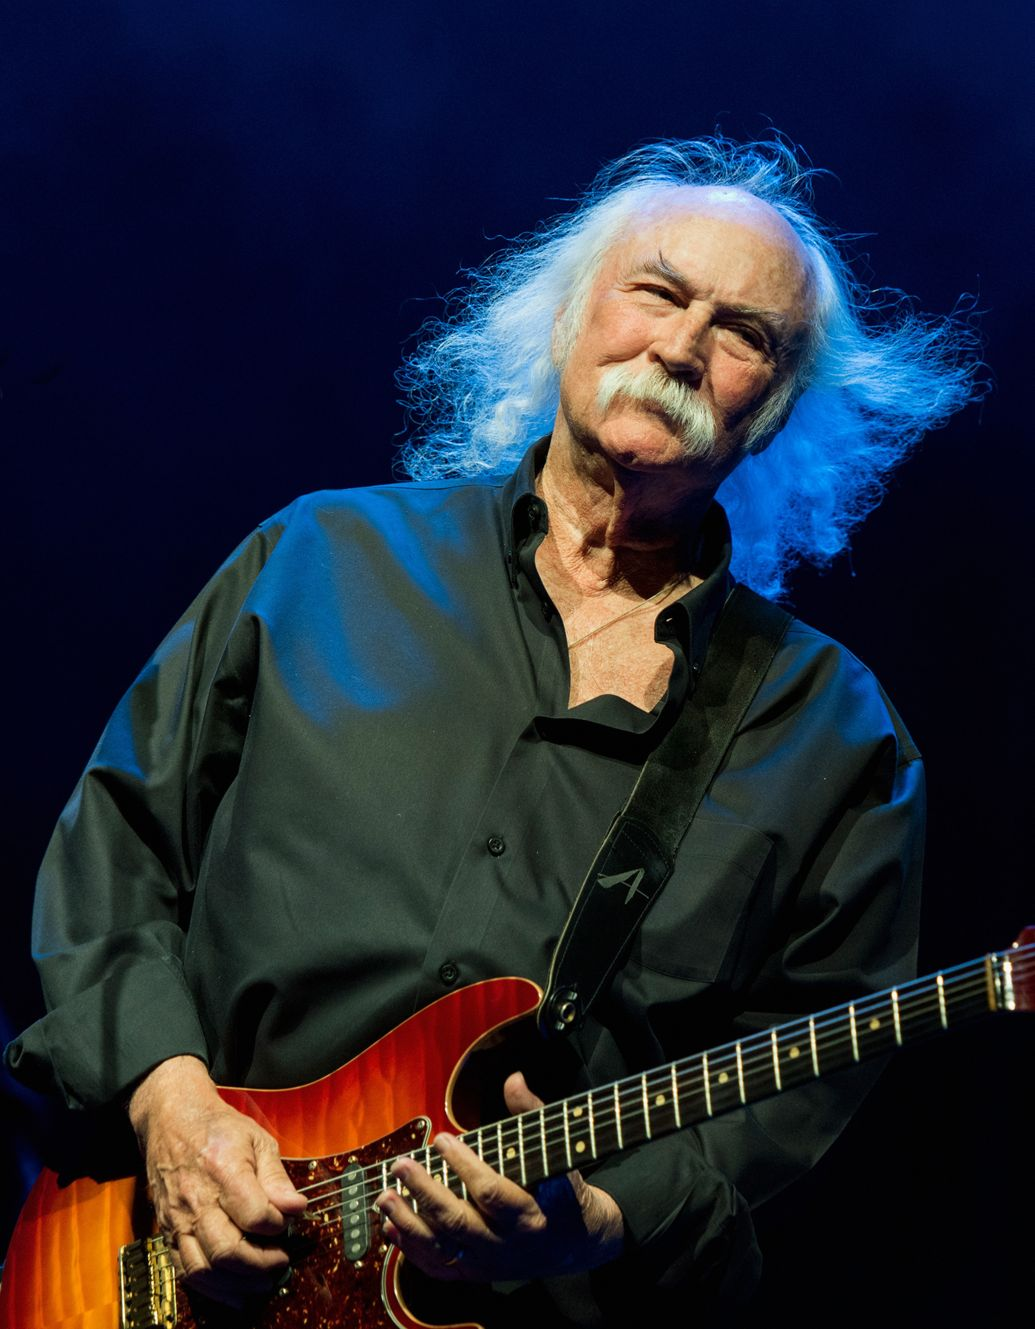 David Crosby hit a jogger in California while driving 55 miles per hour